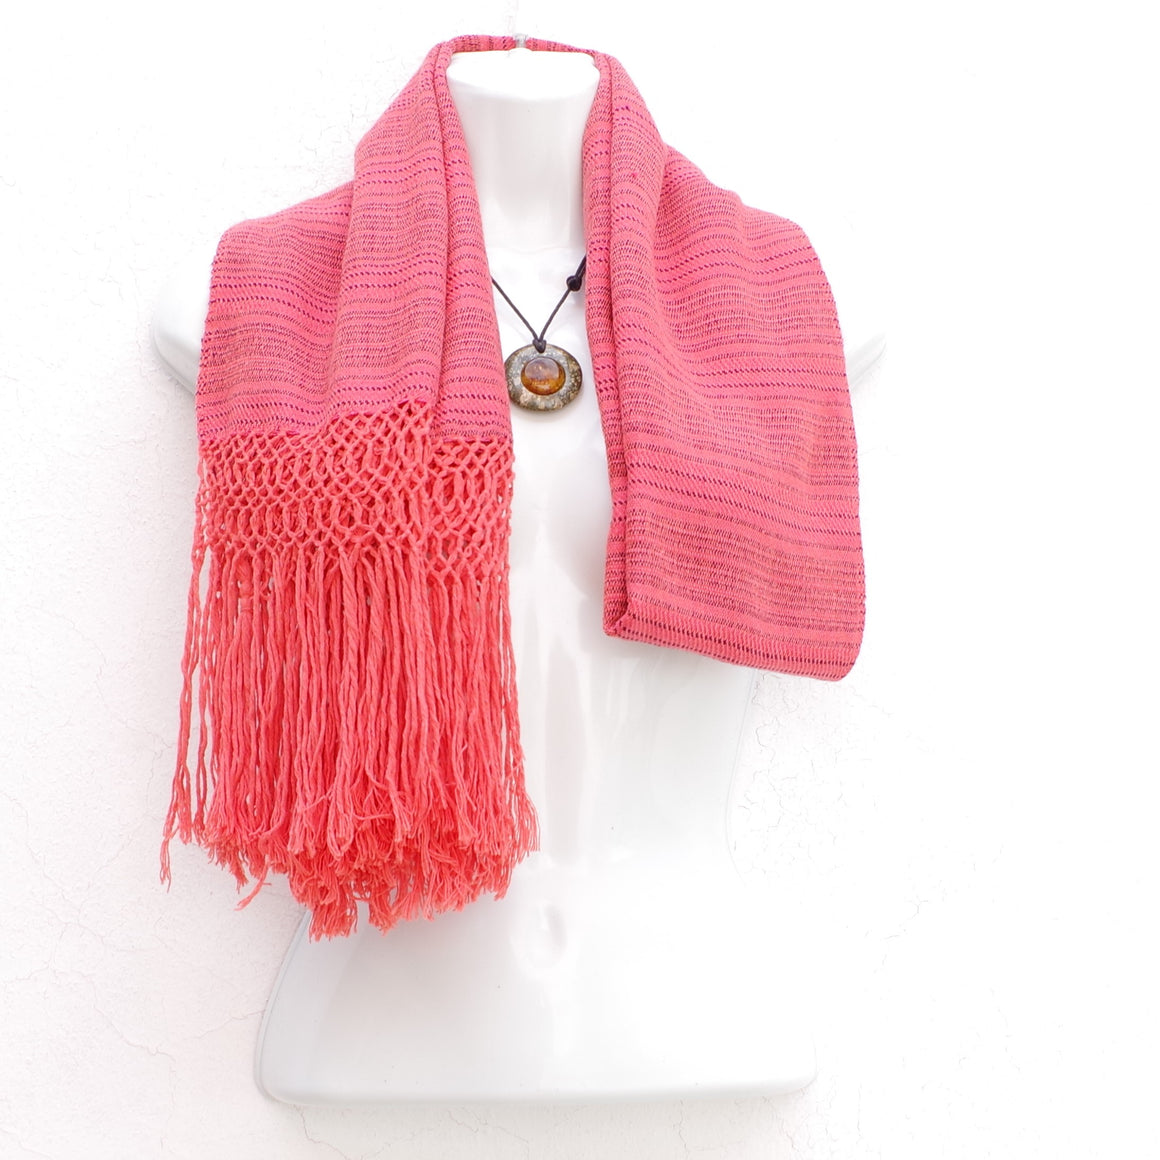 Mayan Copal Orange Mexican Rebozo Shawl with Fringes Embroidered with Cotton and Yard